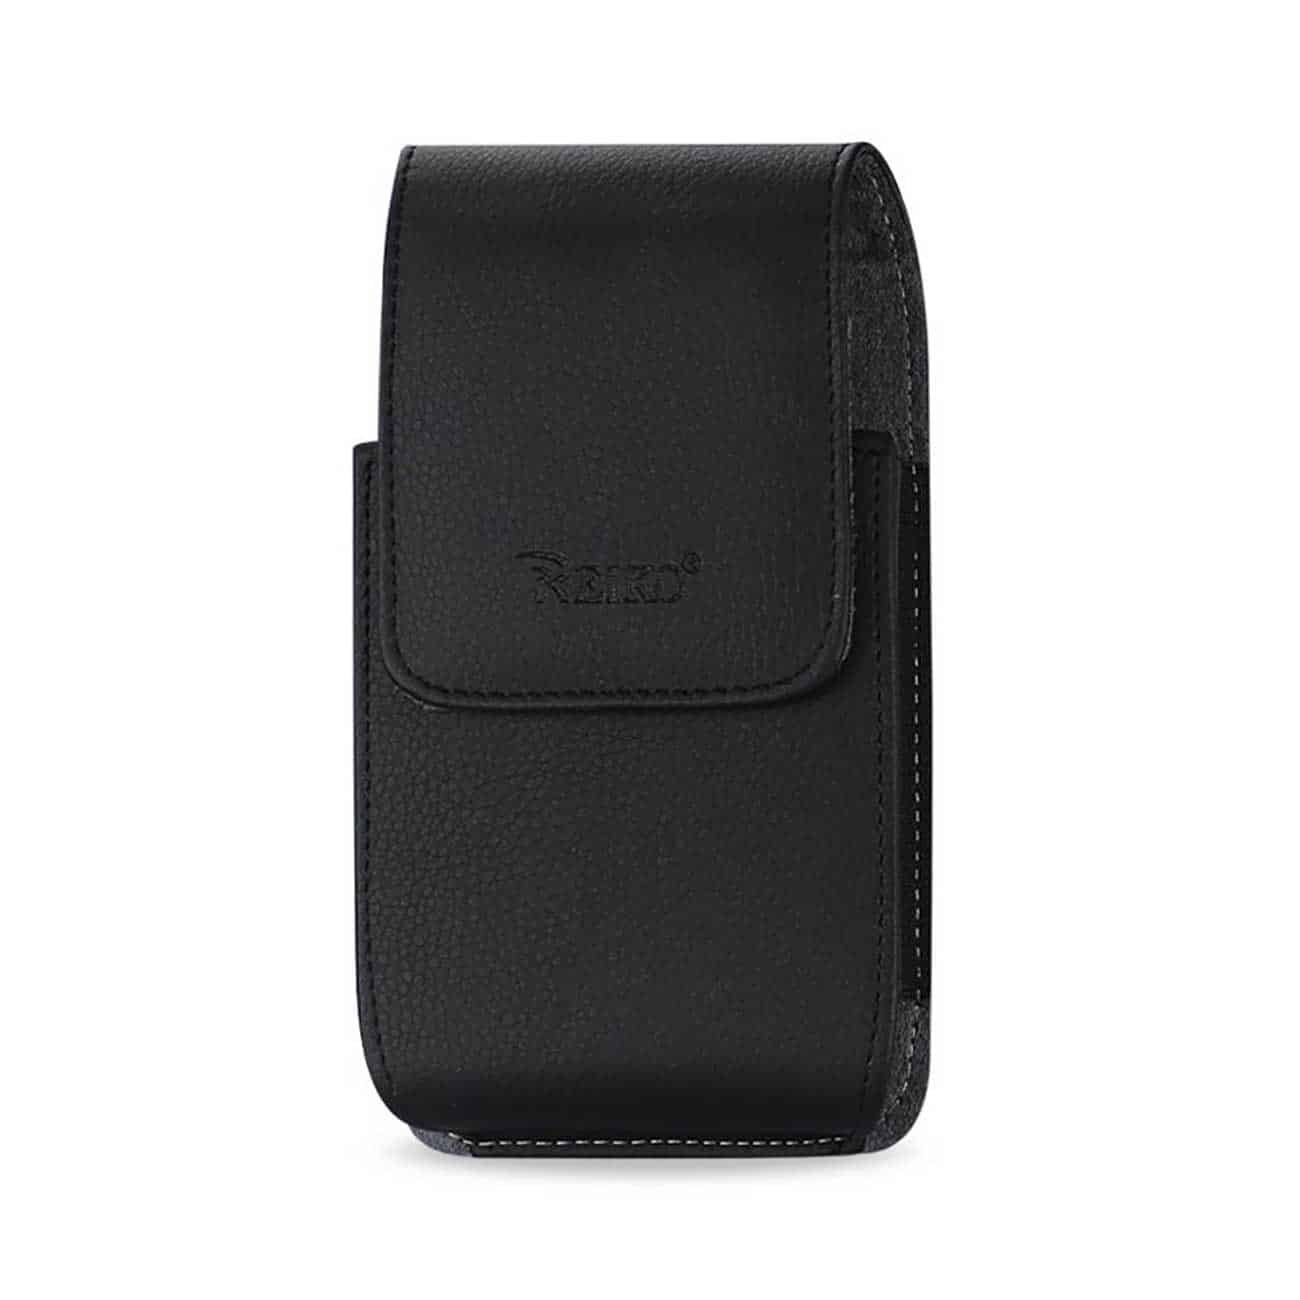 Leather Vertical Pouch With Embossed  Logo And Simple Design In Black (7.0X3.9X0.7 Inches)